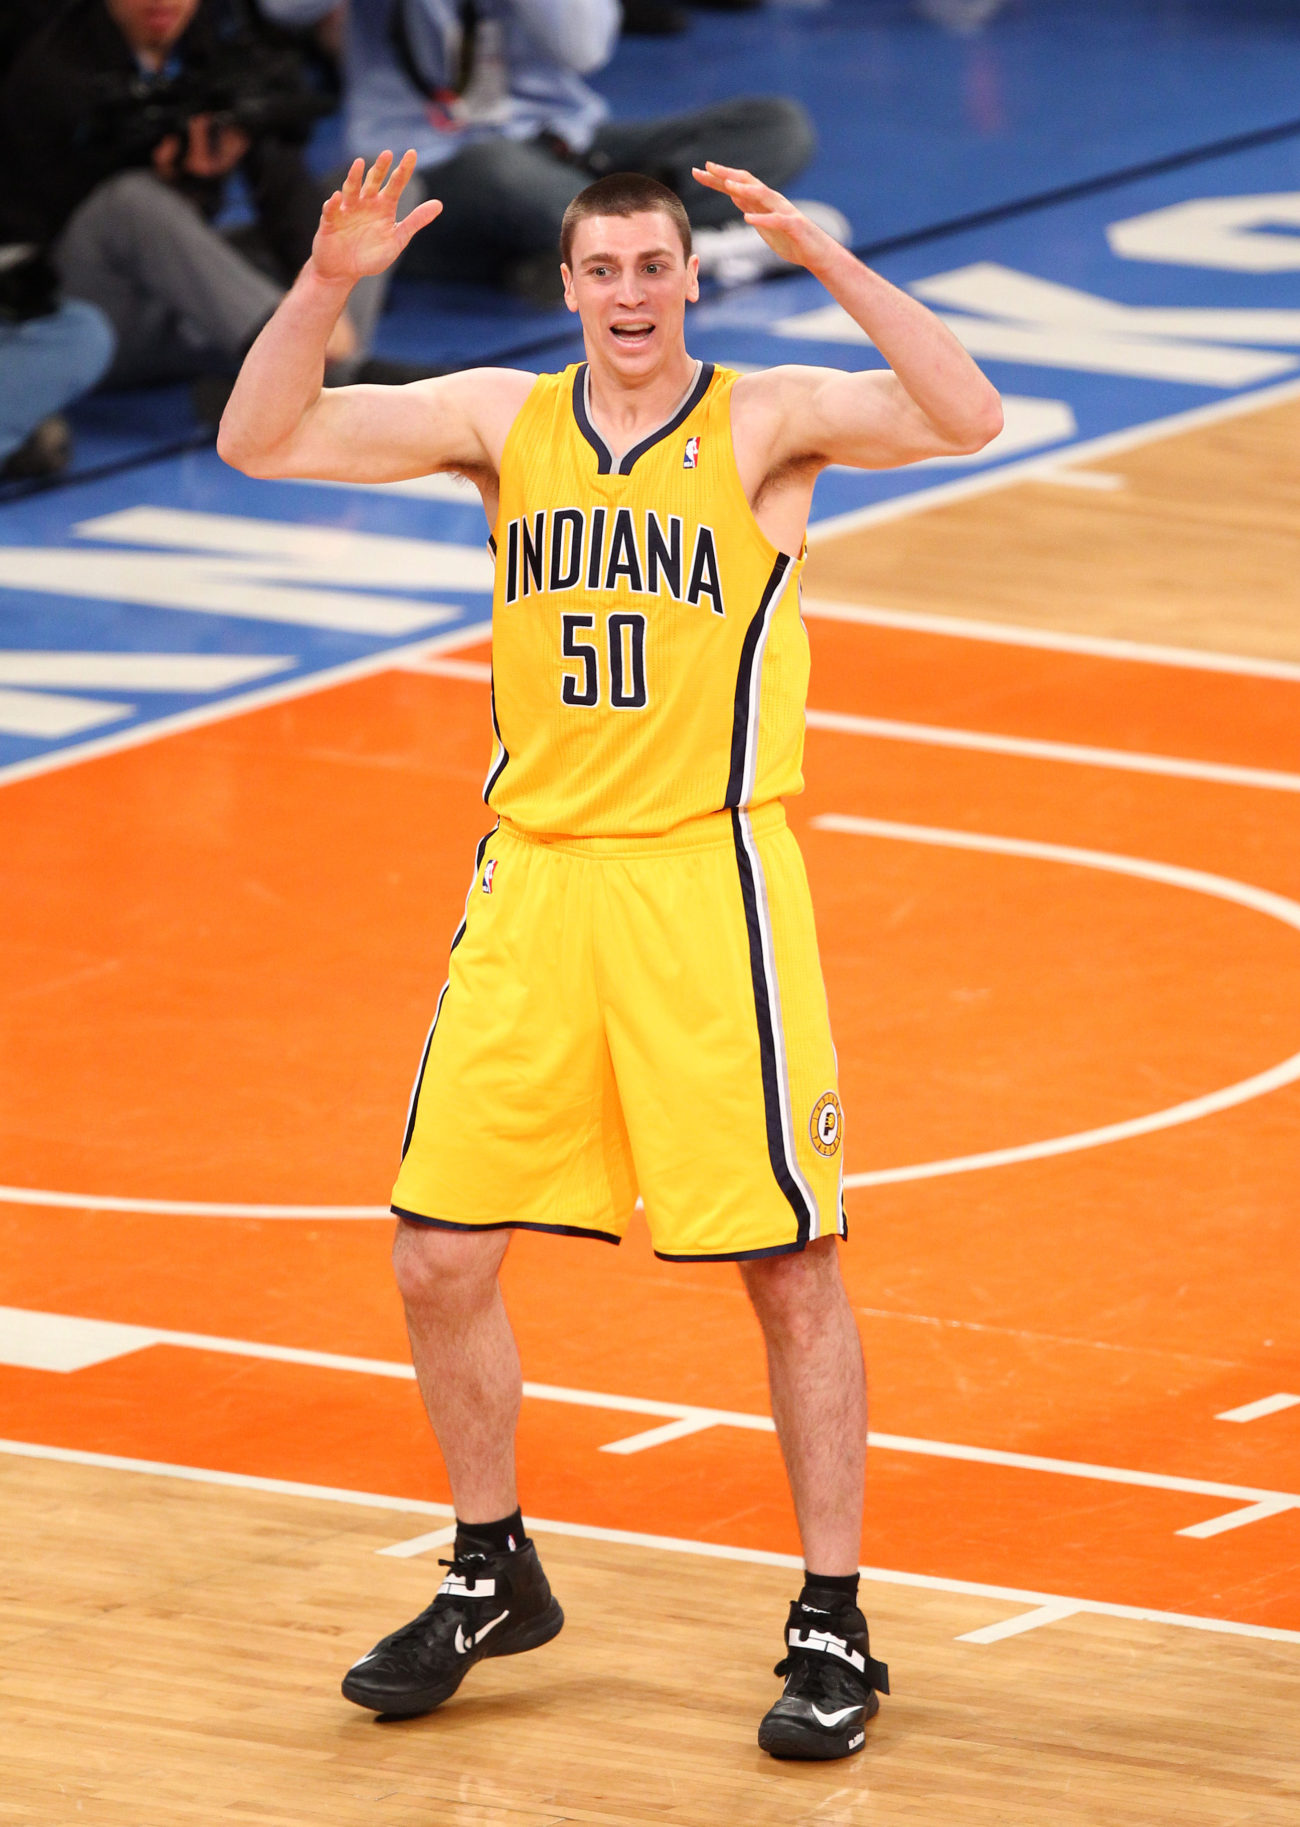 May 5, 2013; New York, NY, USA; Indiana Pacers forward Tyler Hansbrough (50) reacts to a call by the referee during the second half at Madison Square Garden. Mandatory Credit: Danny Wild-USA TODAY Sports